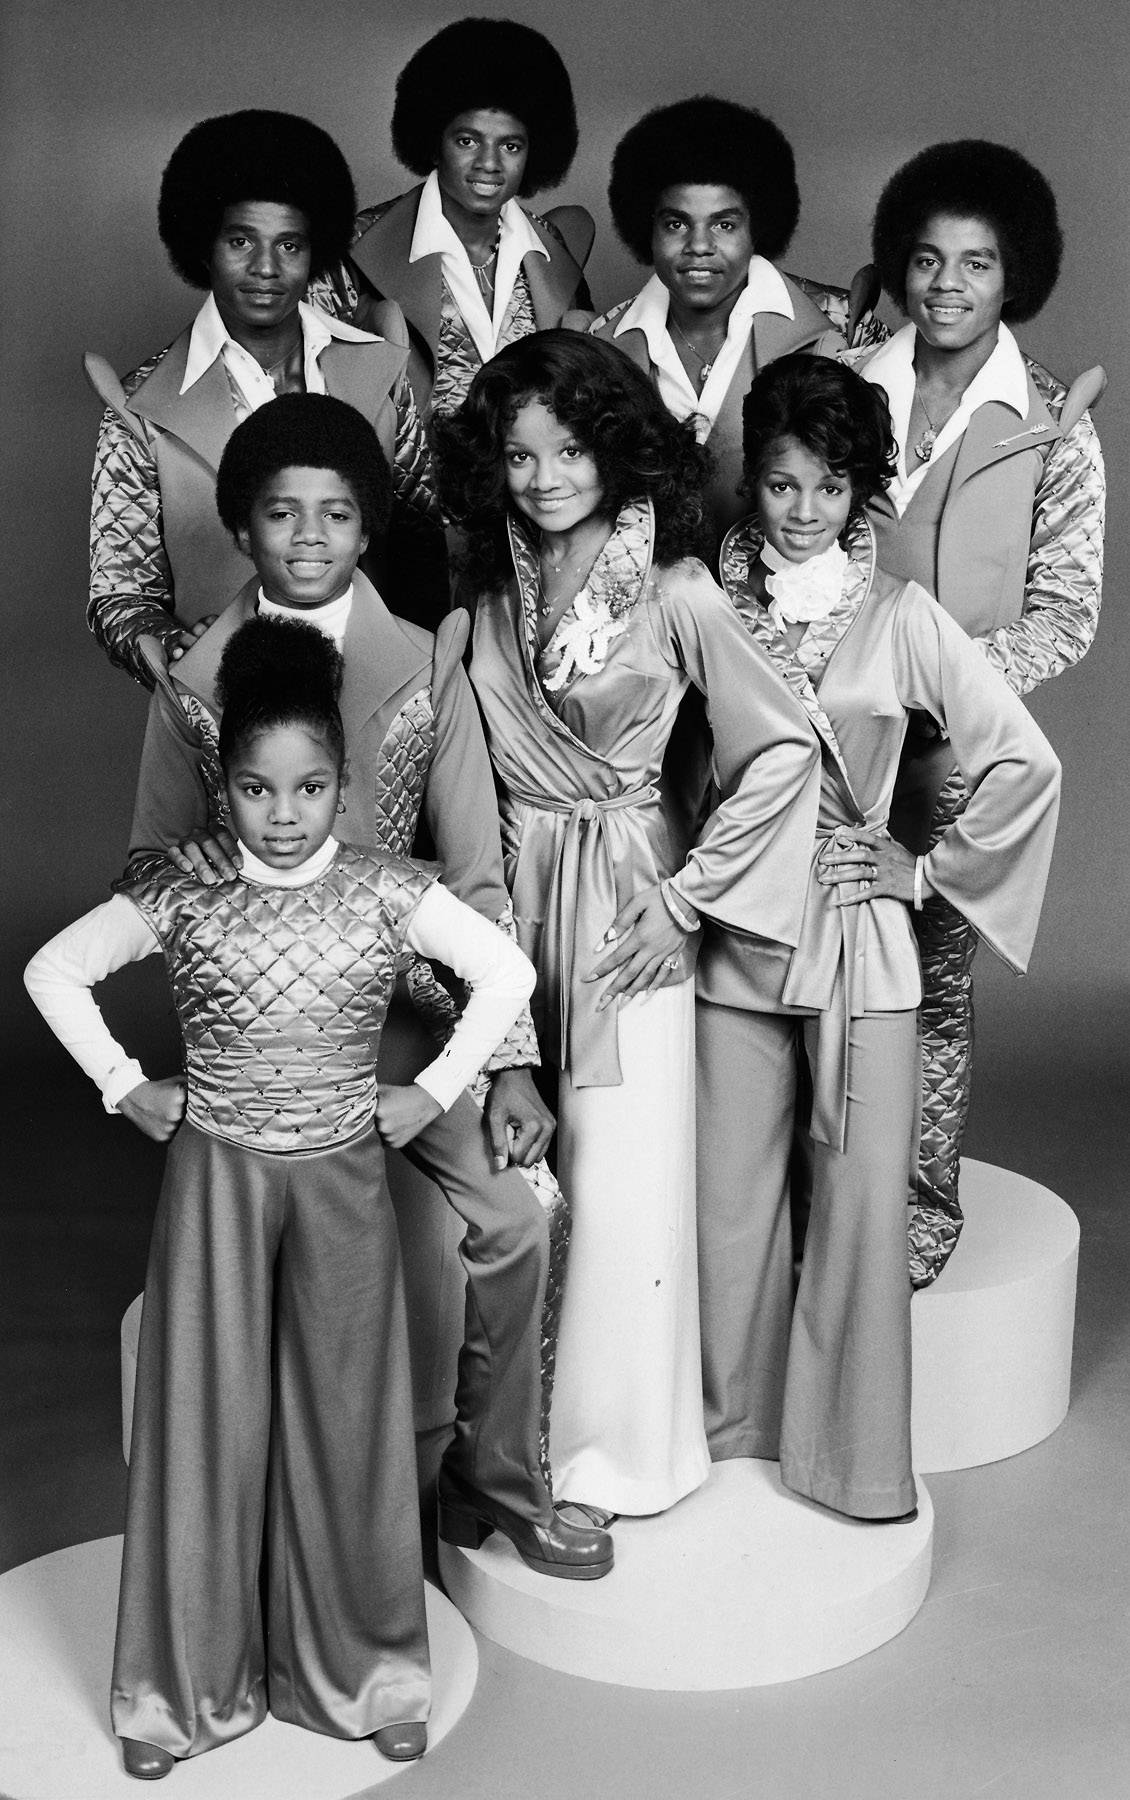 The Jacksons  - Let's do a head count! America's favorite mega-talented family The Jacksons consisted of: Janet, Randy, Jackie, Michael, Tito, Marlon, La Toya and Rebbie. (Photo: CBS/Getty Images)